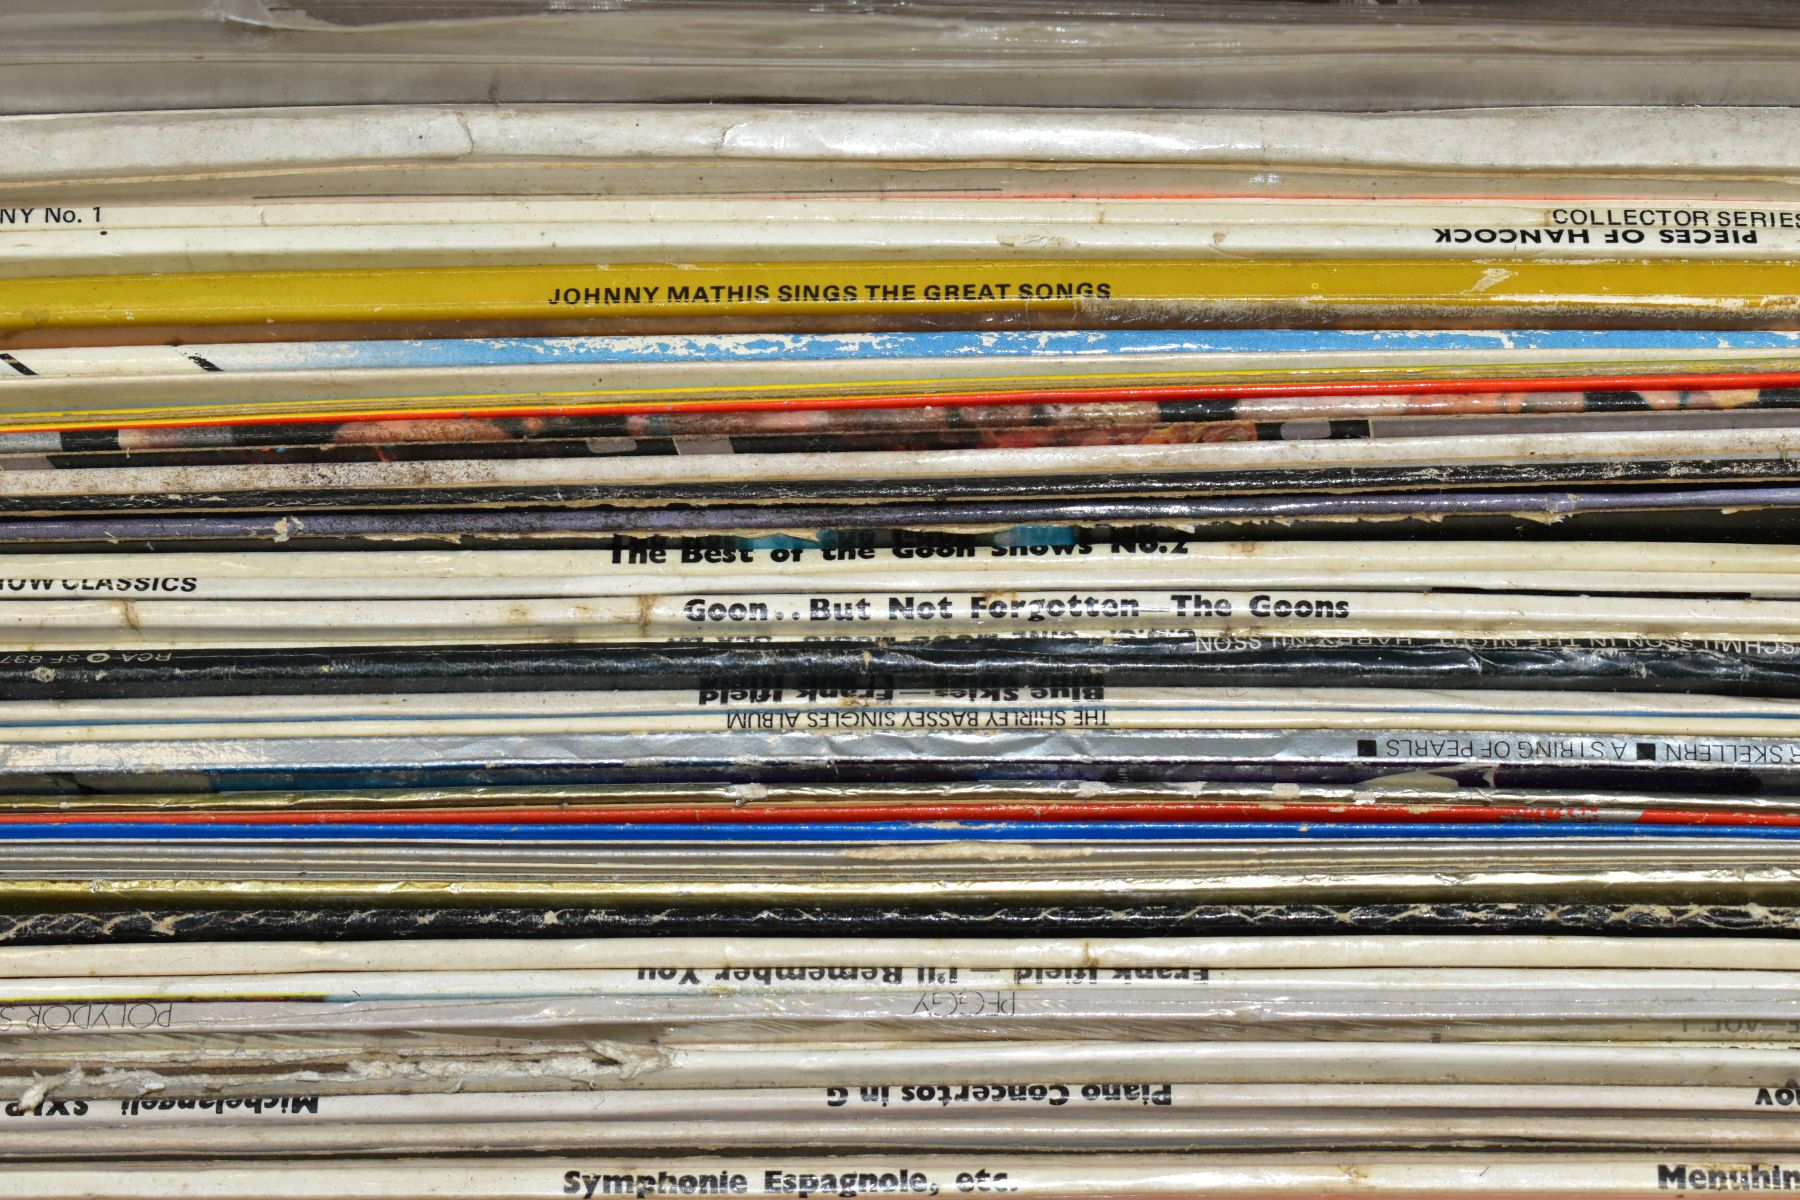 TWO TRAYS CONTAINING OVER ONE HUNDRED AND FIFTY LPs AND BOXSETS, including The Goons, Tony - Image 2 of 9